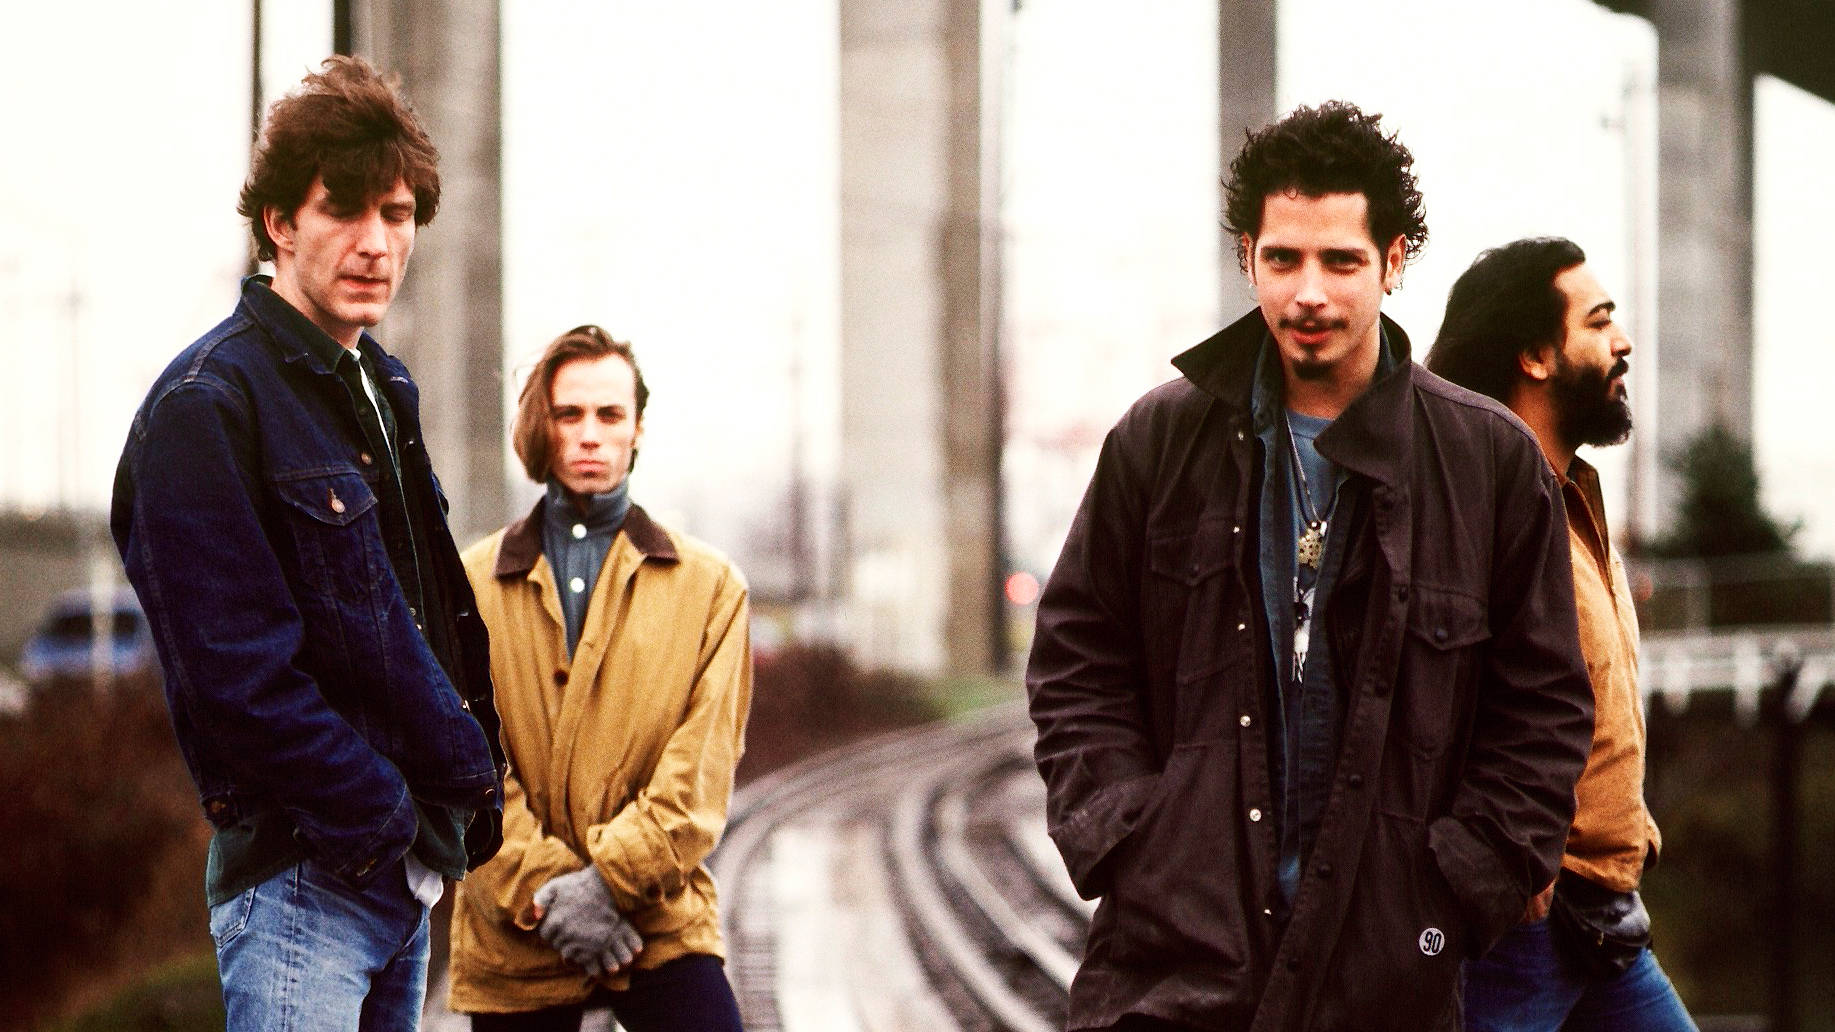 Soundgarden deny withholding money from Chris Cornell's widow